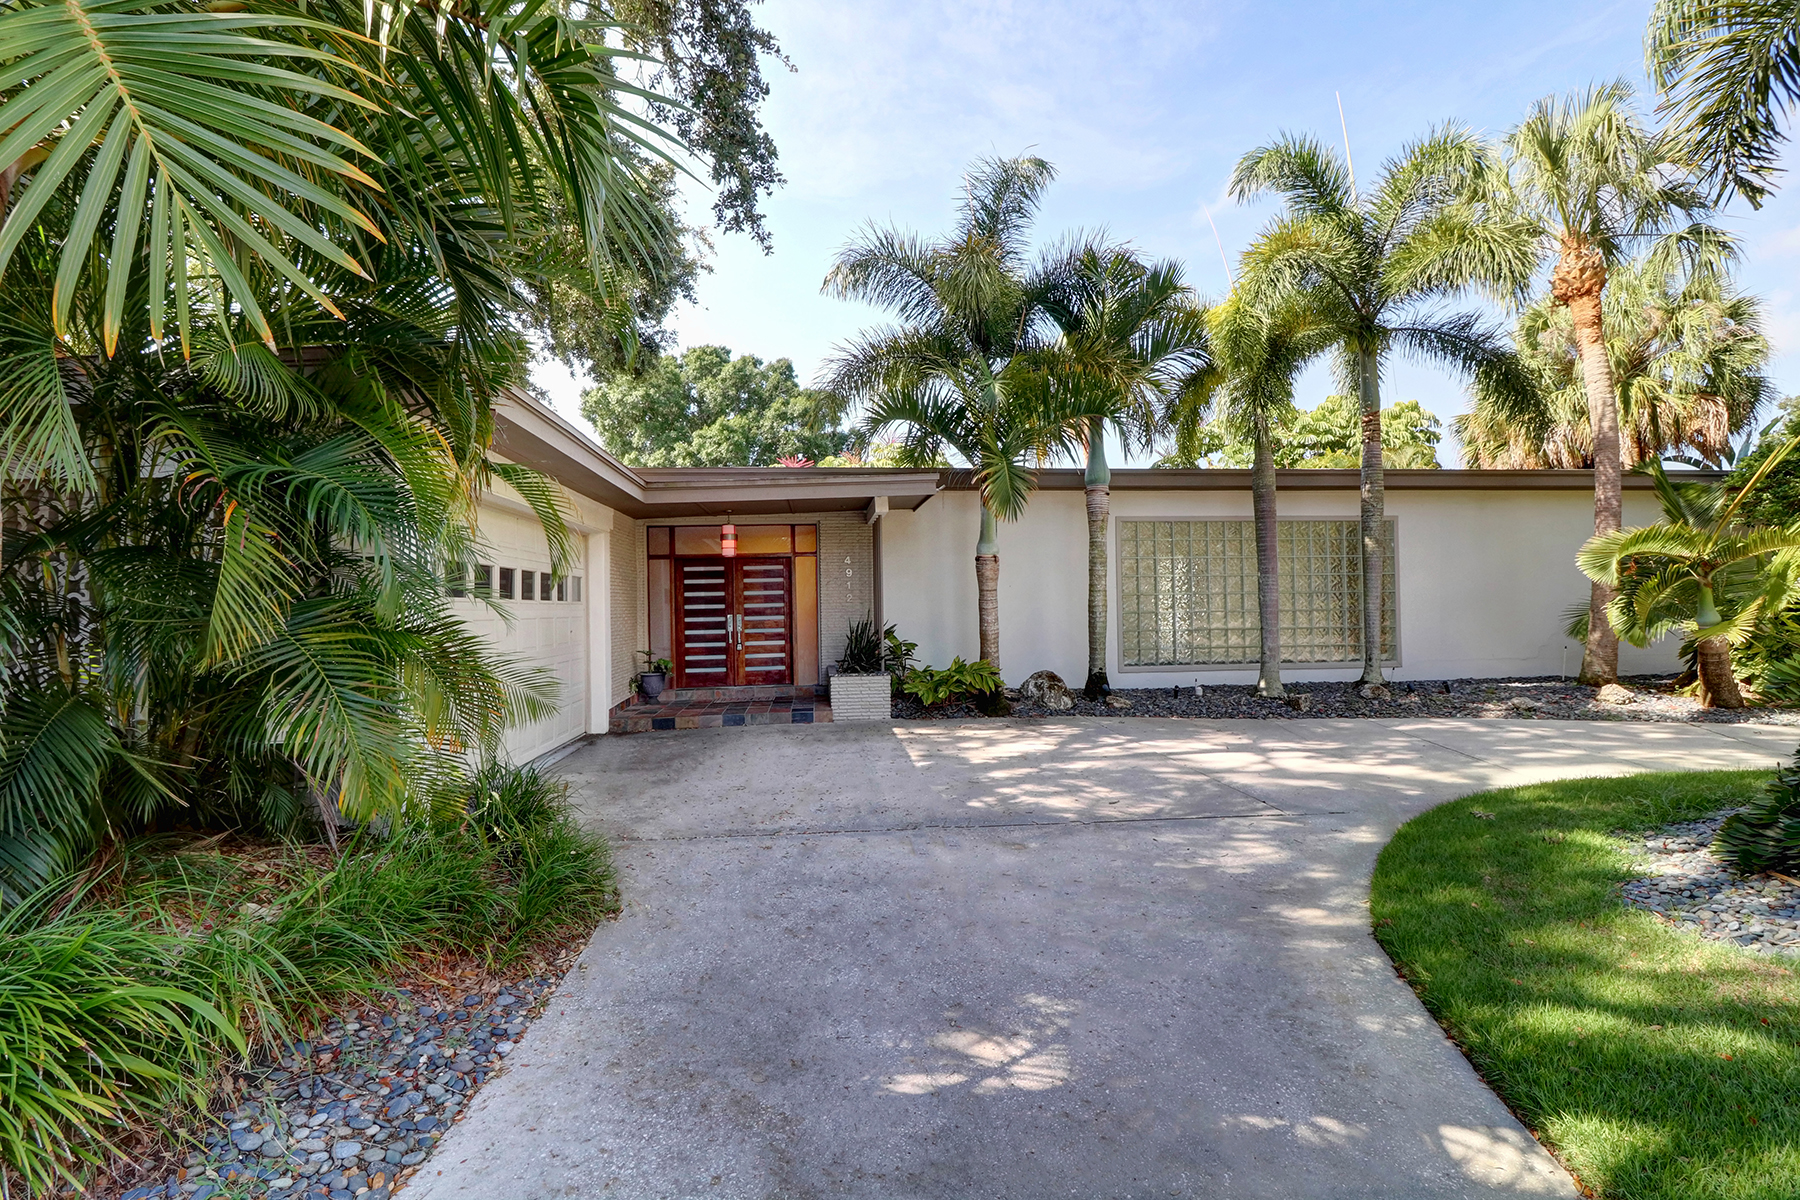 Single Family Home for Sale at SOUTH TAMPA 4912 S Melrose Ave Tampa, Florida, 33629 United States